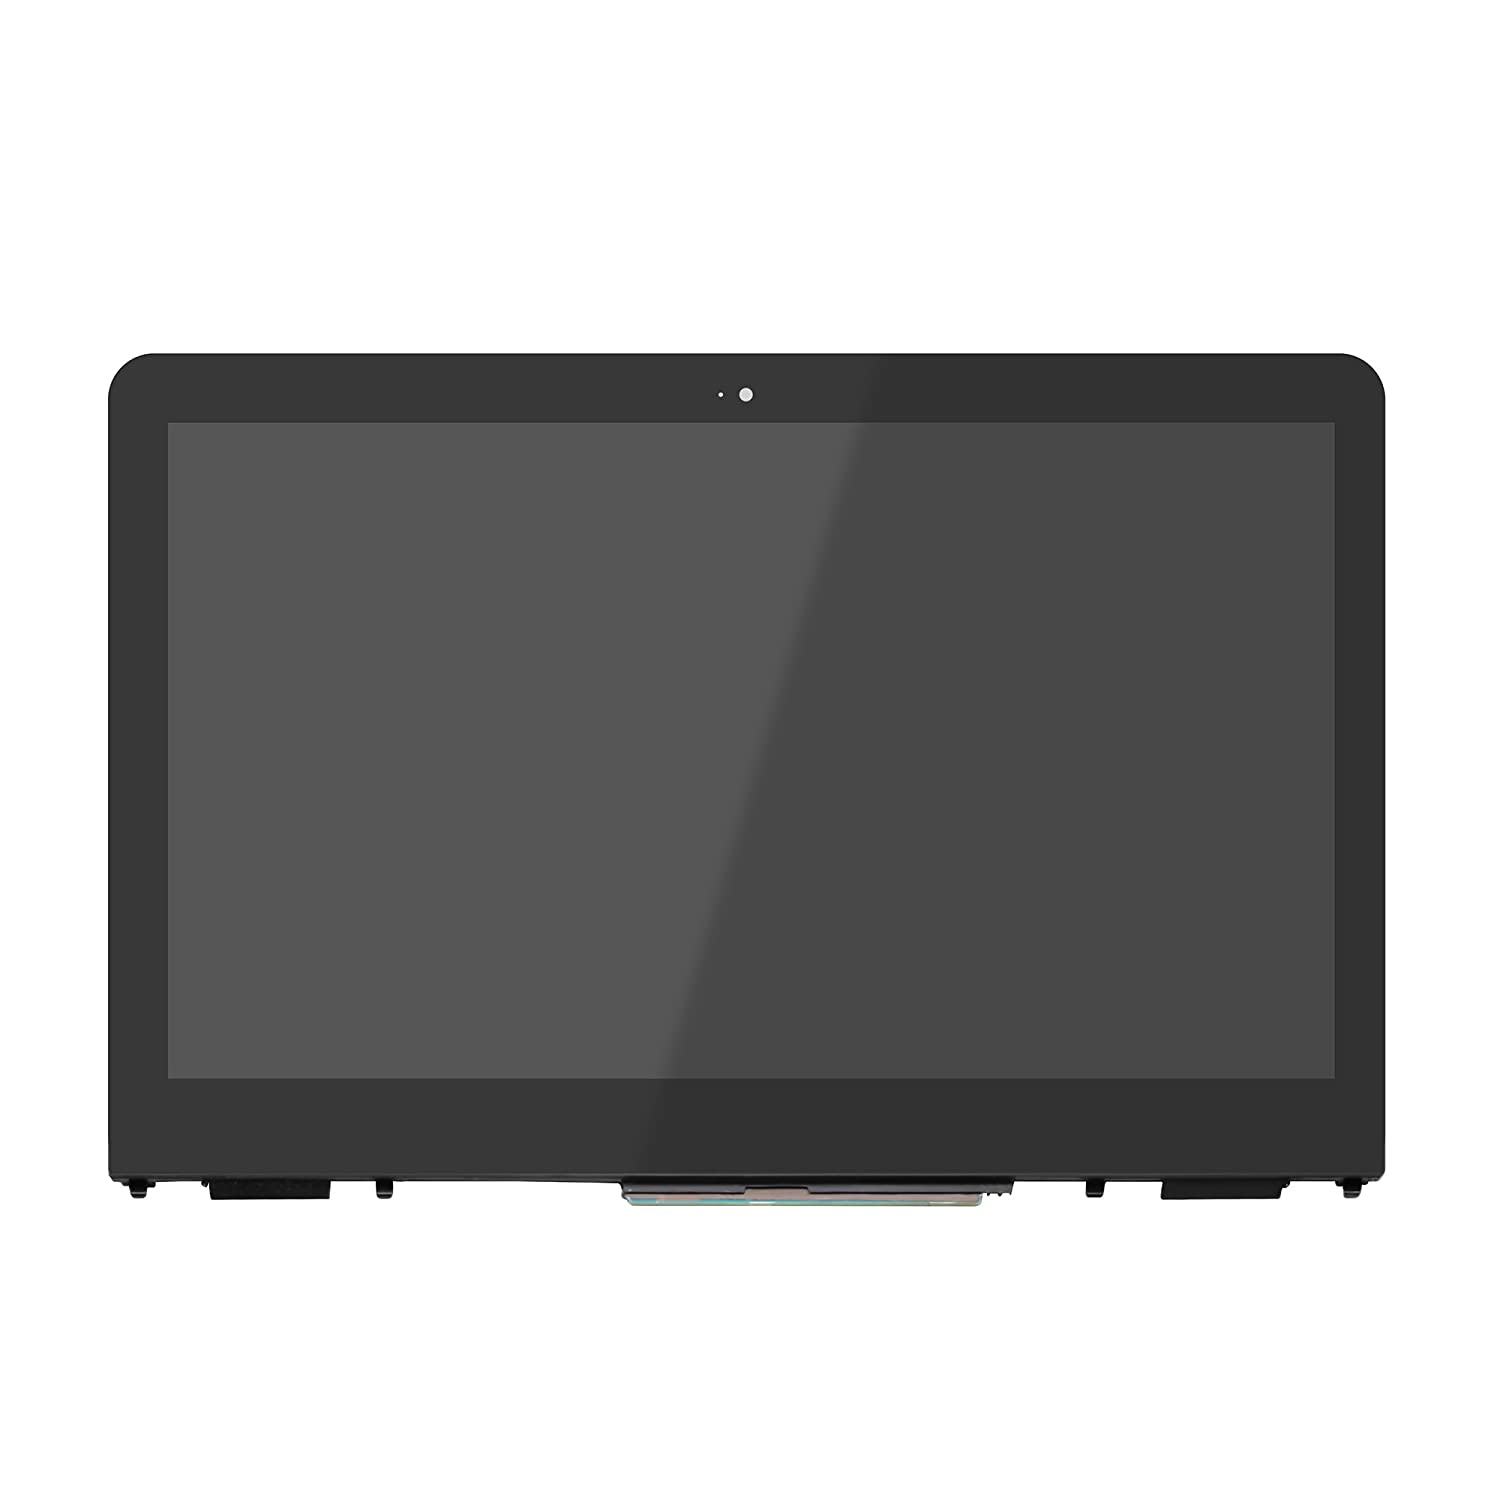 Bezel Board for HP Pavilion x360 m3-u000 m3-u100 m3-u001dx m3-u002dx m3-u003dx m3-u101dx m3-u103dx m3-u105dx LCDOLED 13.3 HD 1366x768 LP133WH2 SPB4 LCD Display Touch Screen Digitizer Assembly